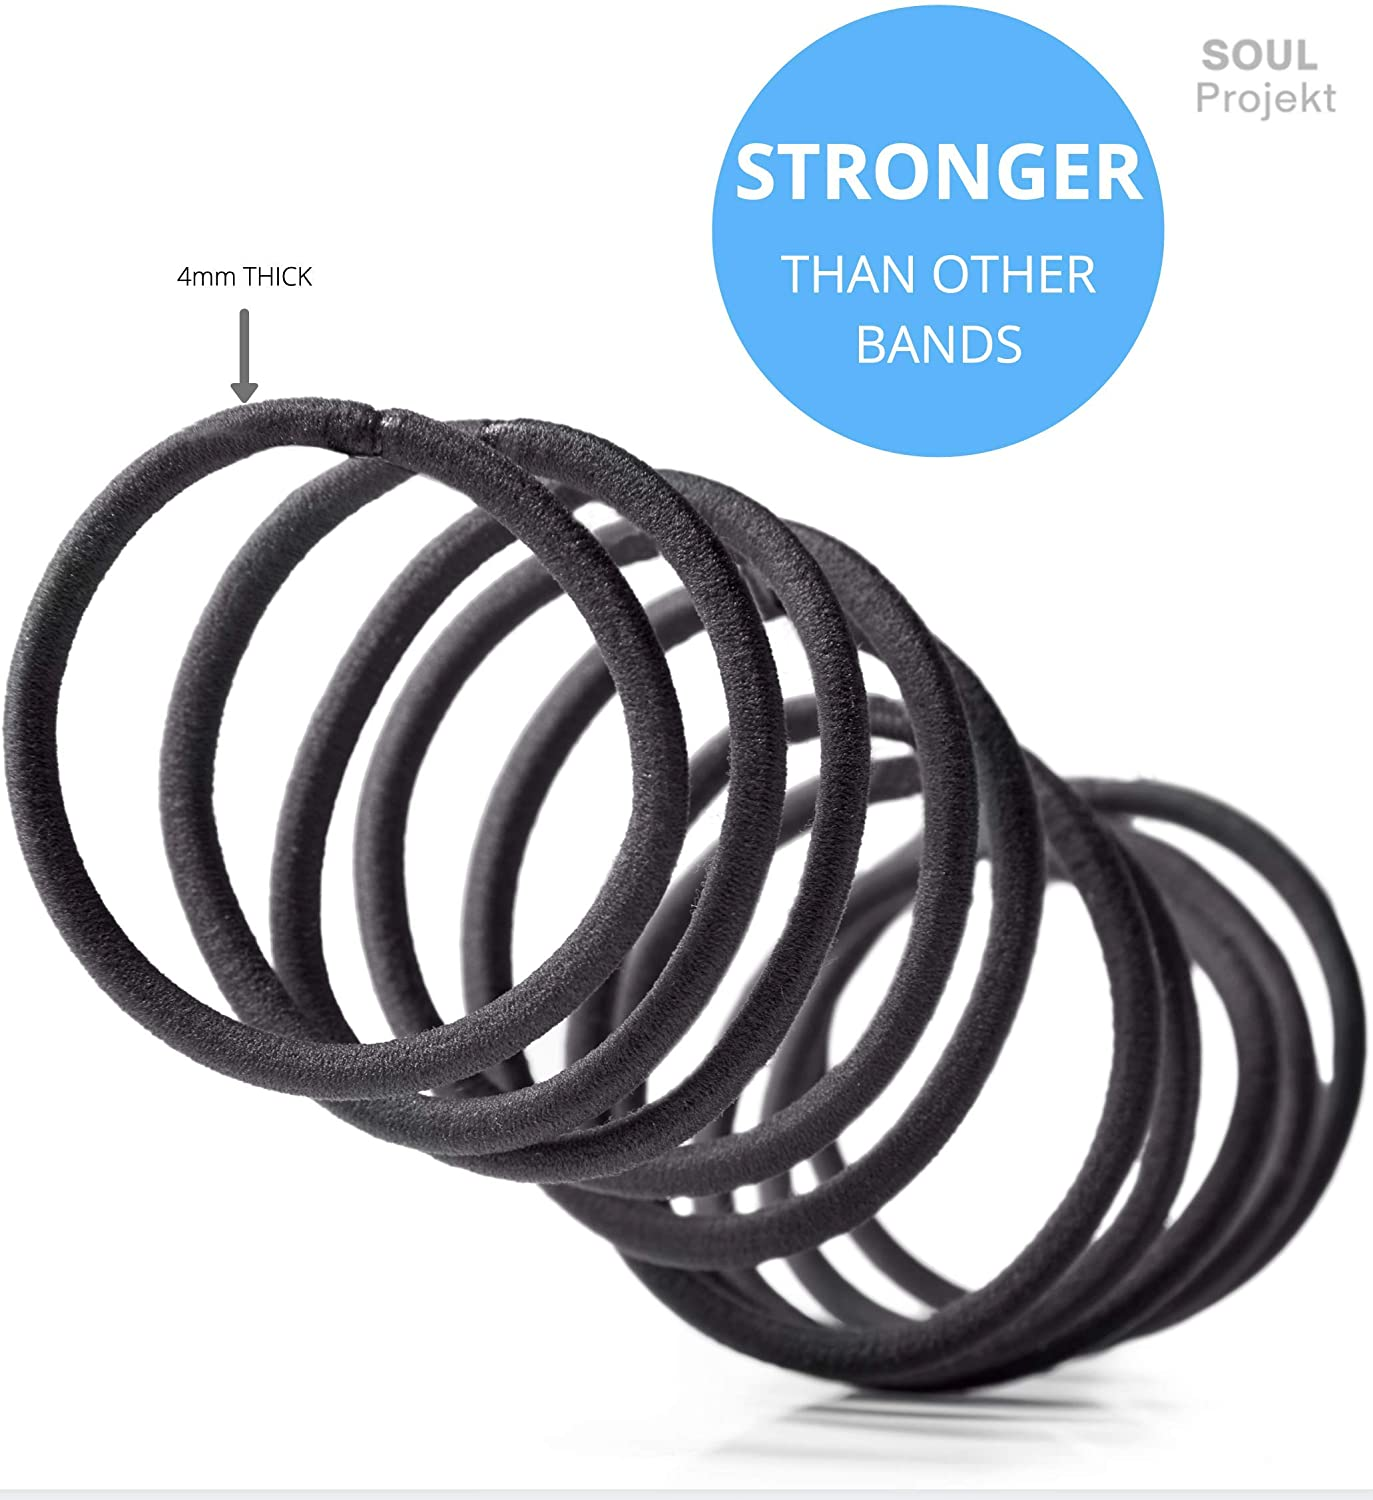 Soul Projekt Hair Bands 100 Pack 4mm/Excellent Multipurpose Ties (Black), No Metal Tough Elastic Hair Bobbles for Numerous Hair Types/Pigtail, Plaiting, Ponytails & Buns For School, Work or Gym